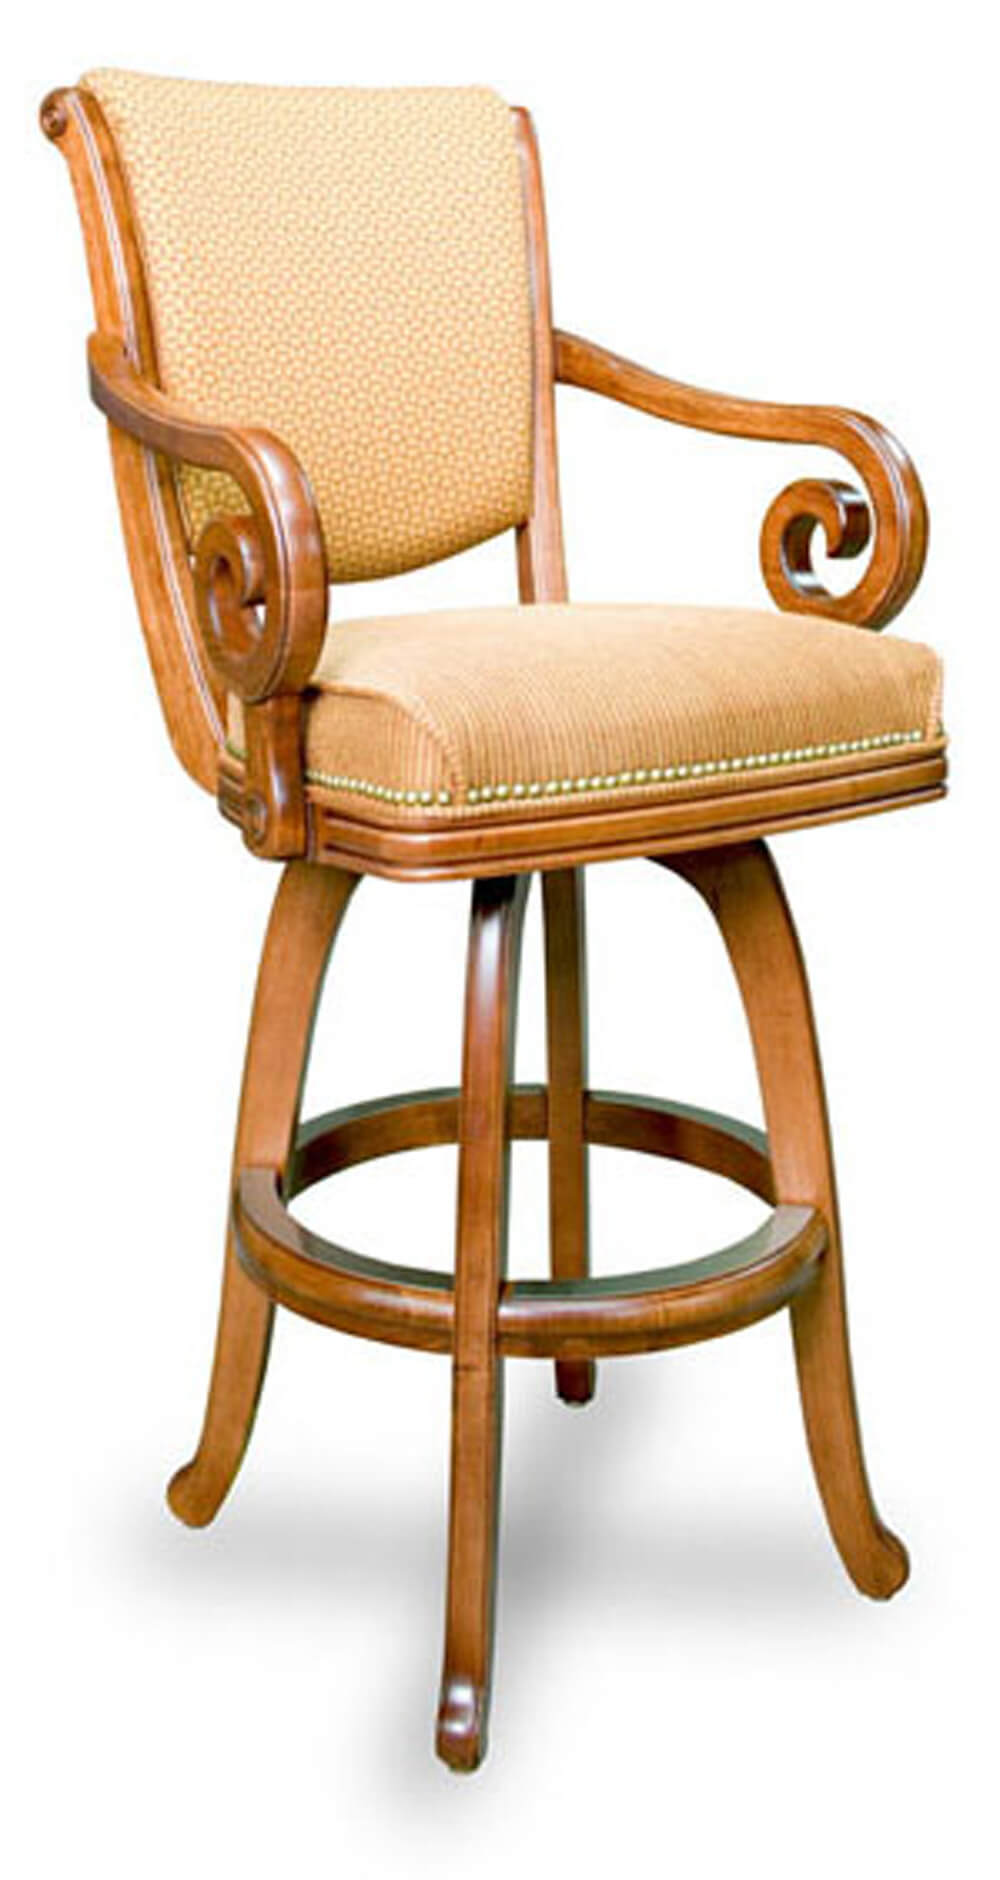 California House S2725 Swivel Bar Stool : S2725 Front L from www.diamondbackbilliards.com size 1000 x 1880 jpeg 109kB